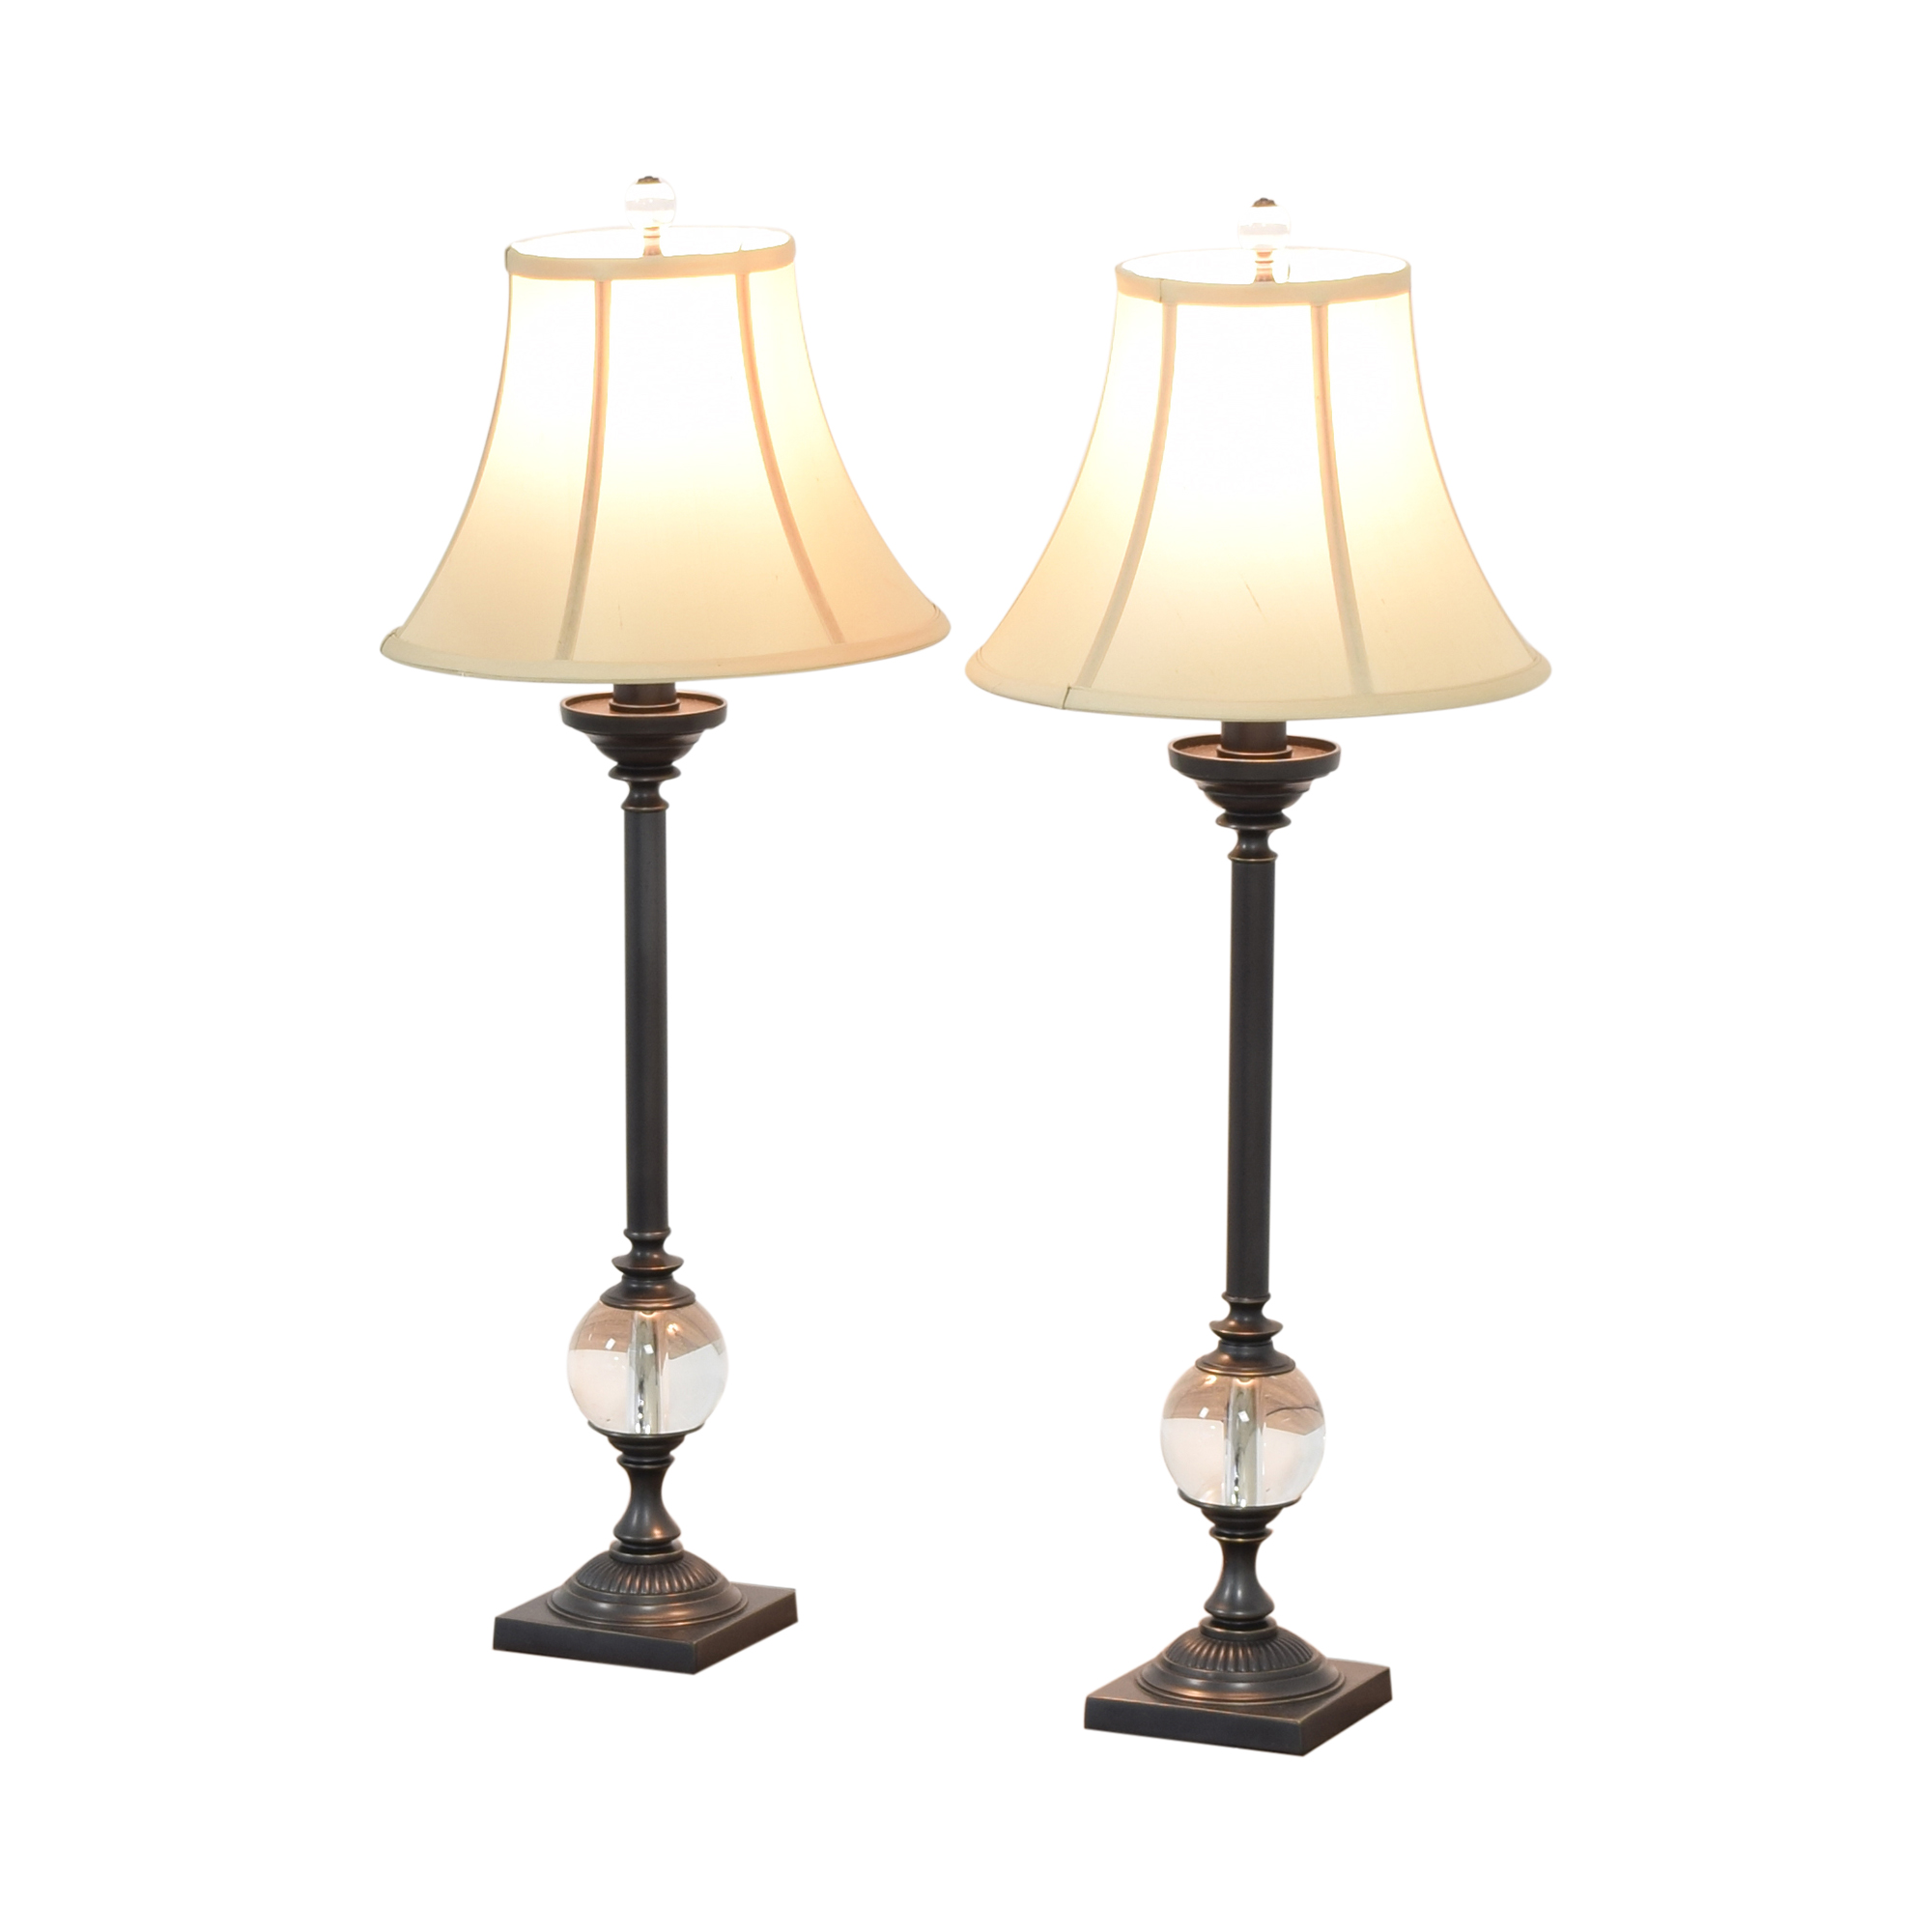 Restoration Hardware Restoration Hardware Crystal Ball Table Lamps